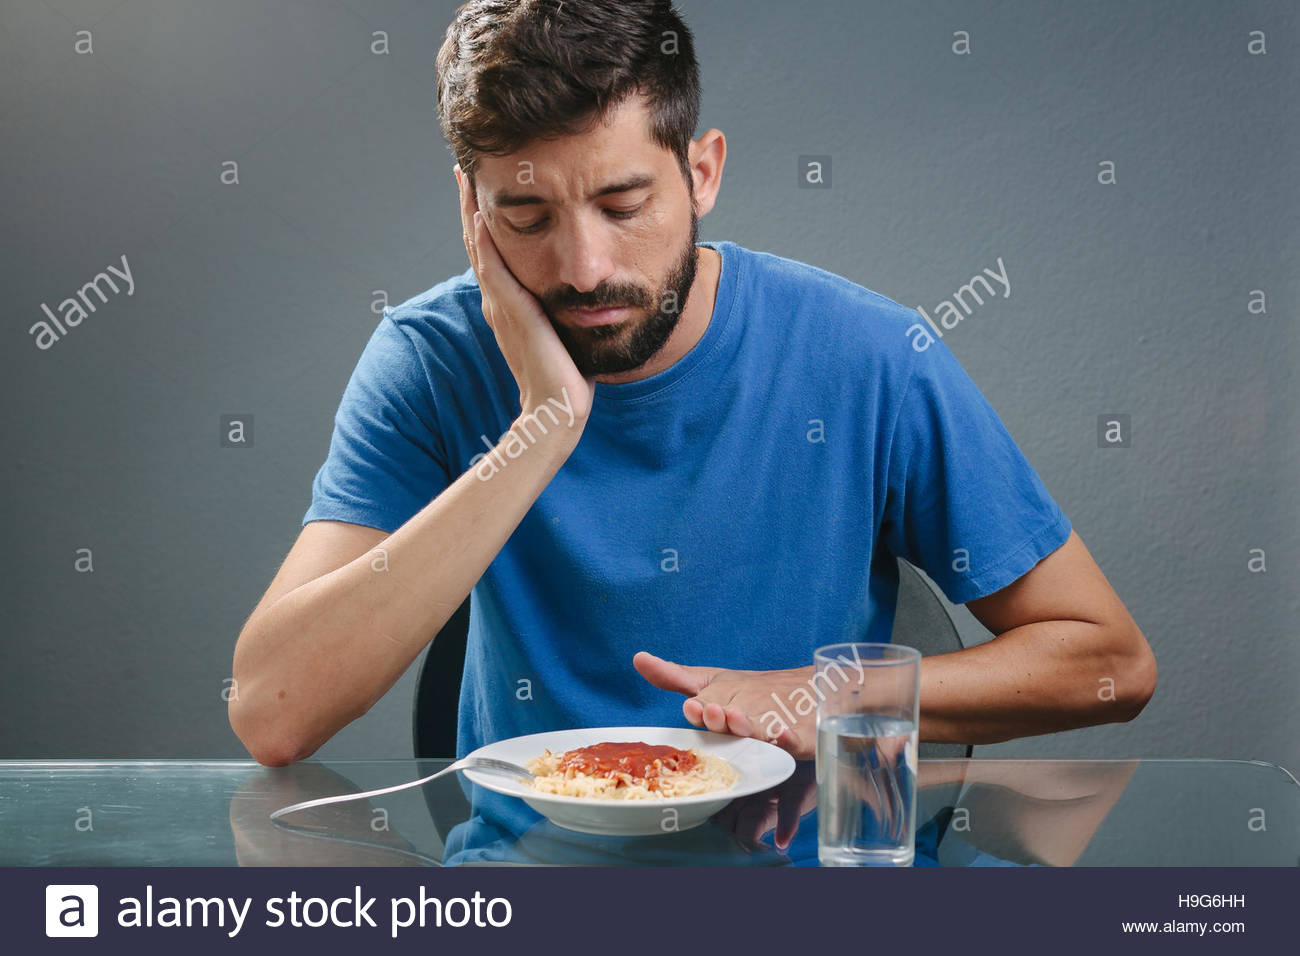 Portrait of man with no appetite in front of the meal. Concept of loss of appetite - Stock Image